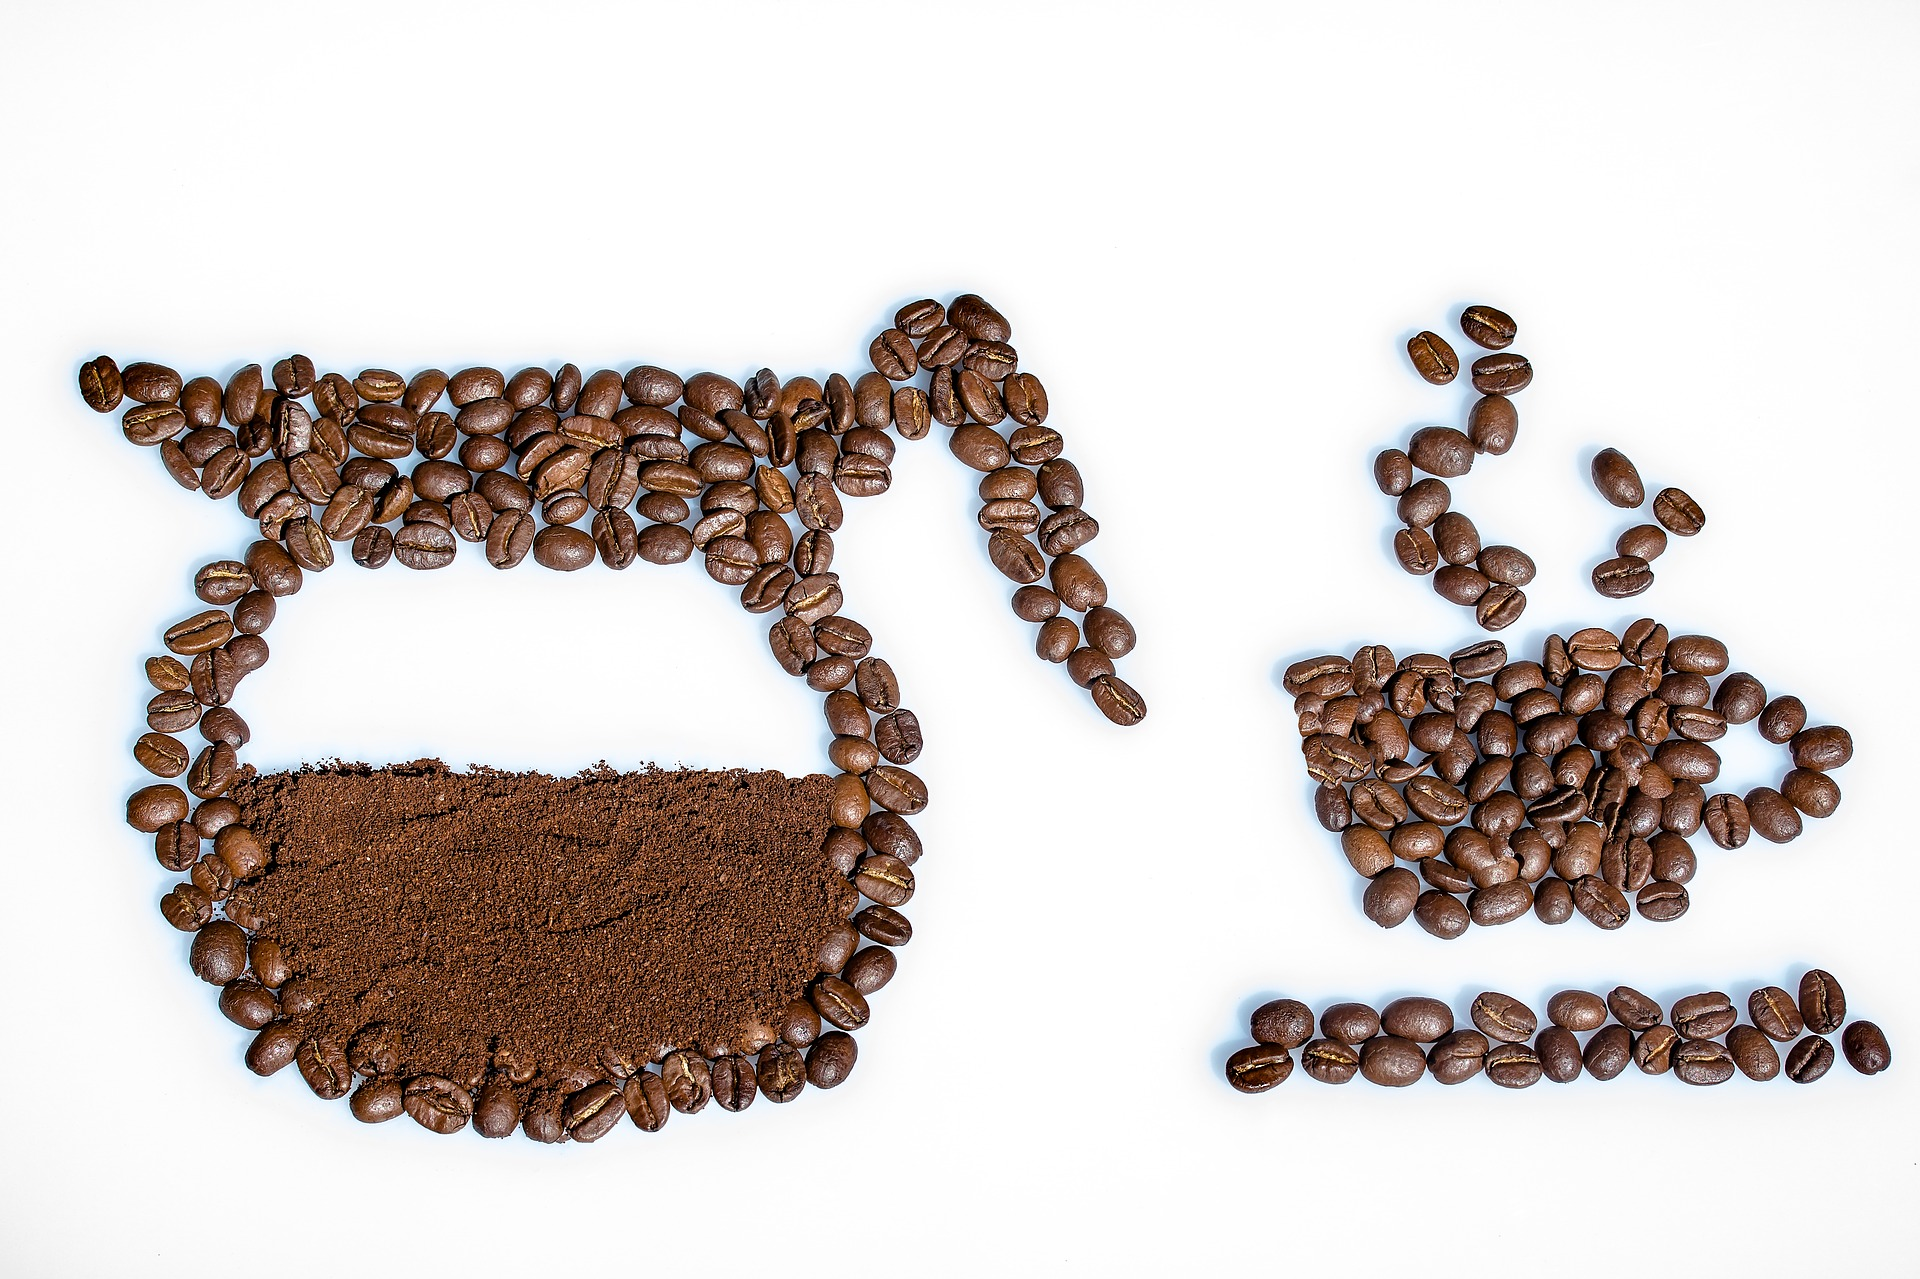 How exactly does coffee affect your brain?